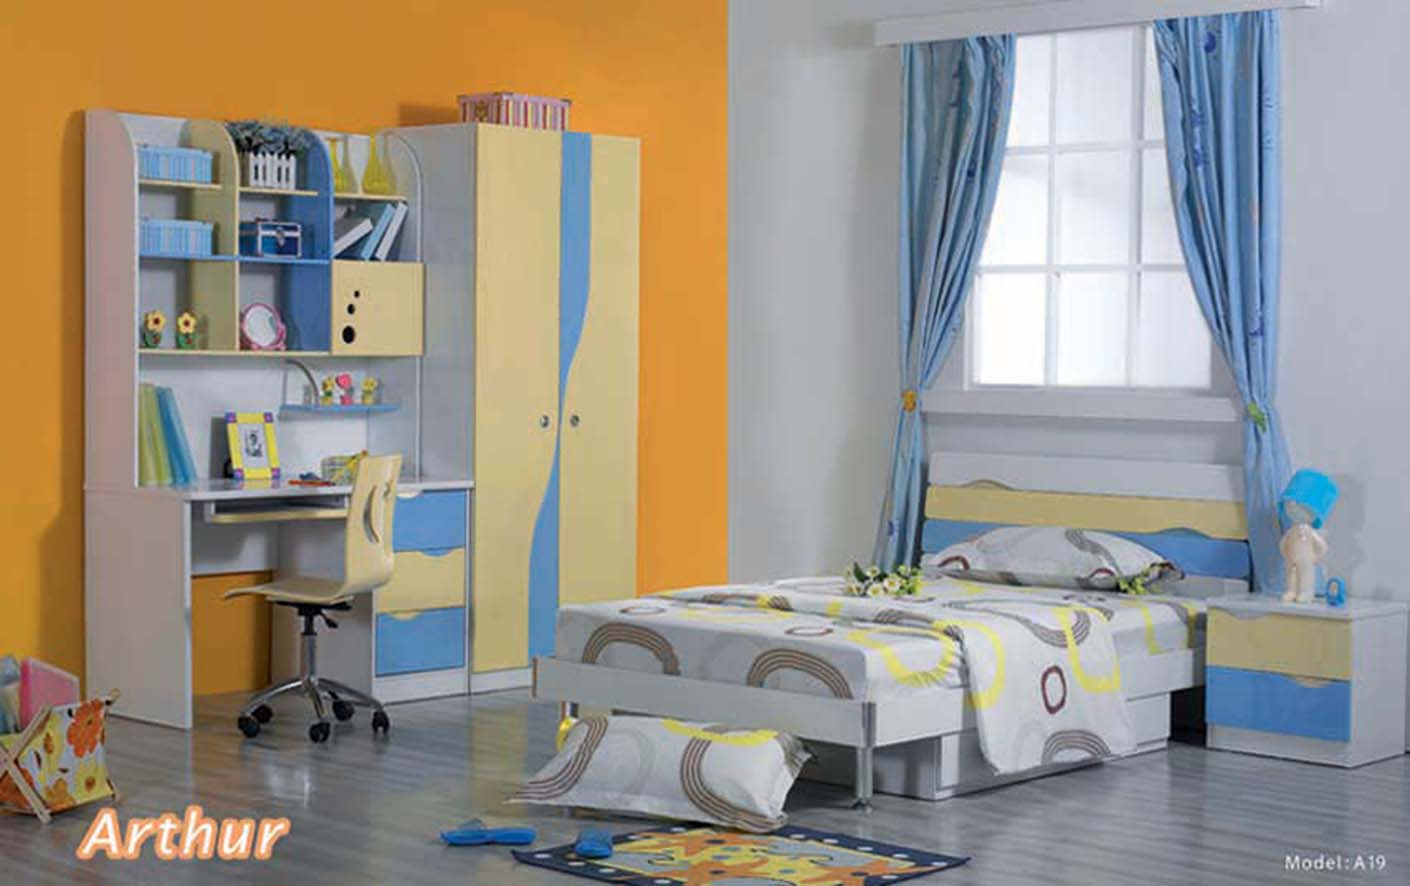 Bedrooms For Teenagers Boys Bedroom Bedrooms For Teenagers Boys Bedroom Boys Bedroom Design Modern Kids Bedroom